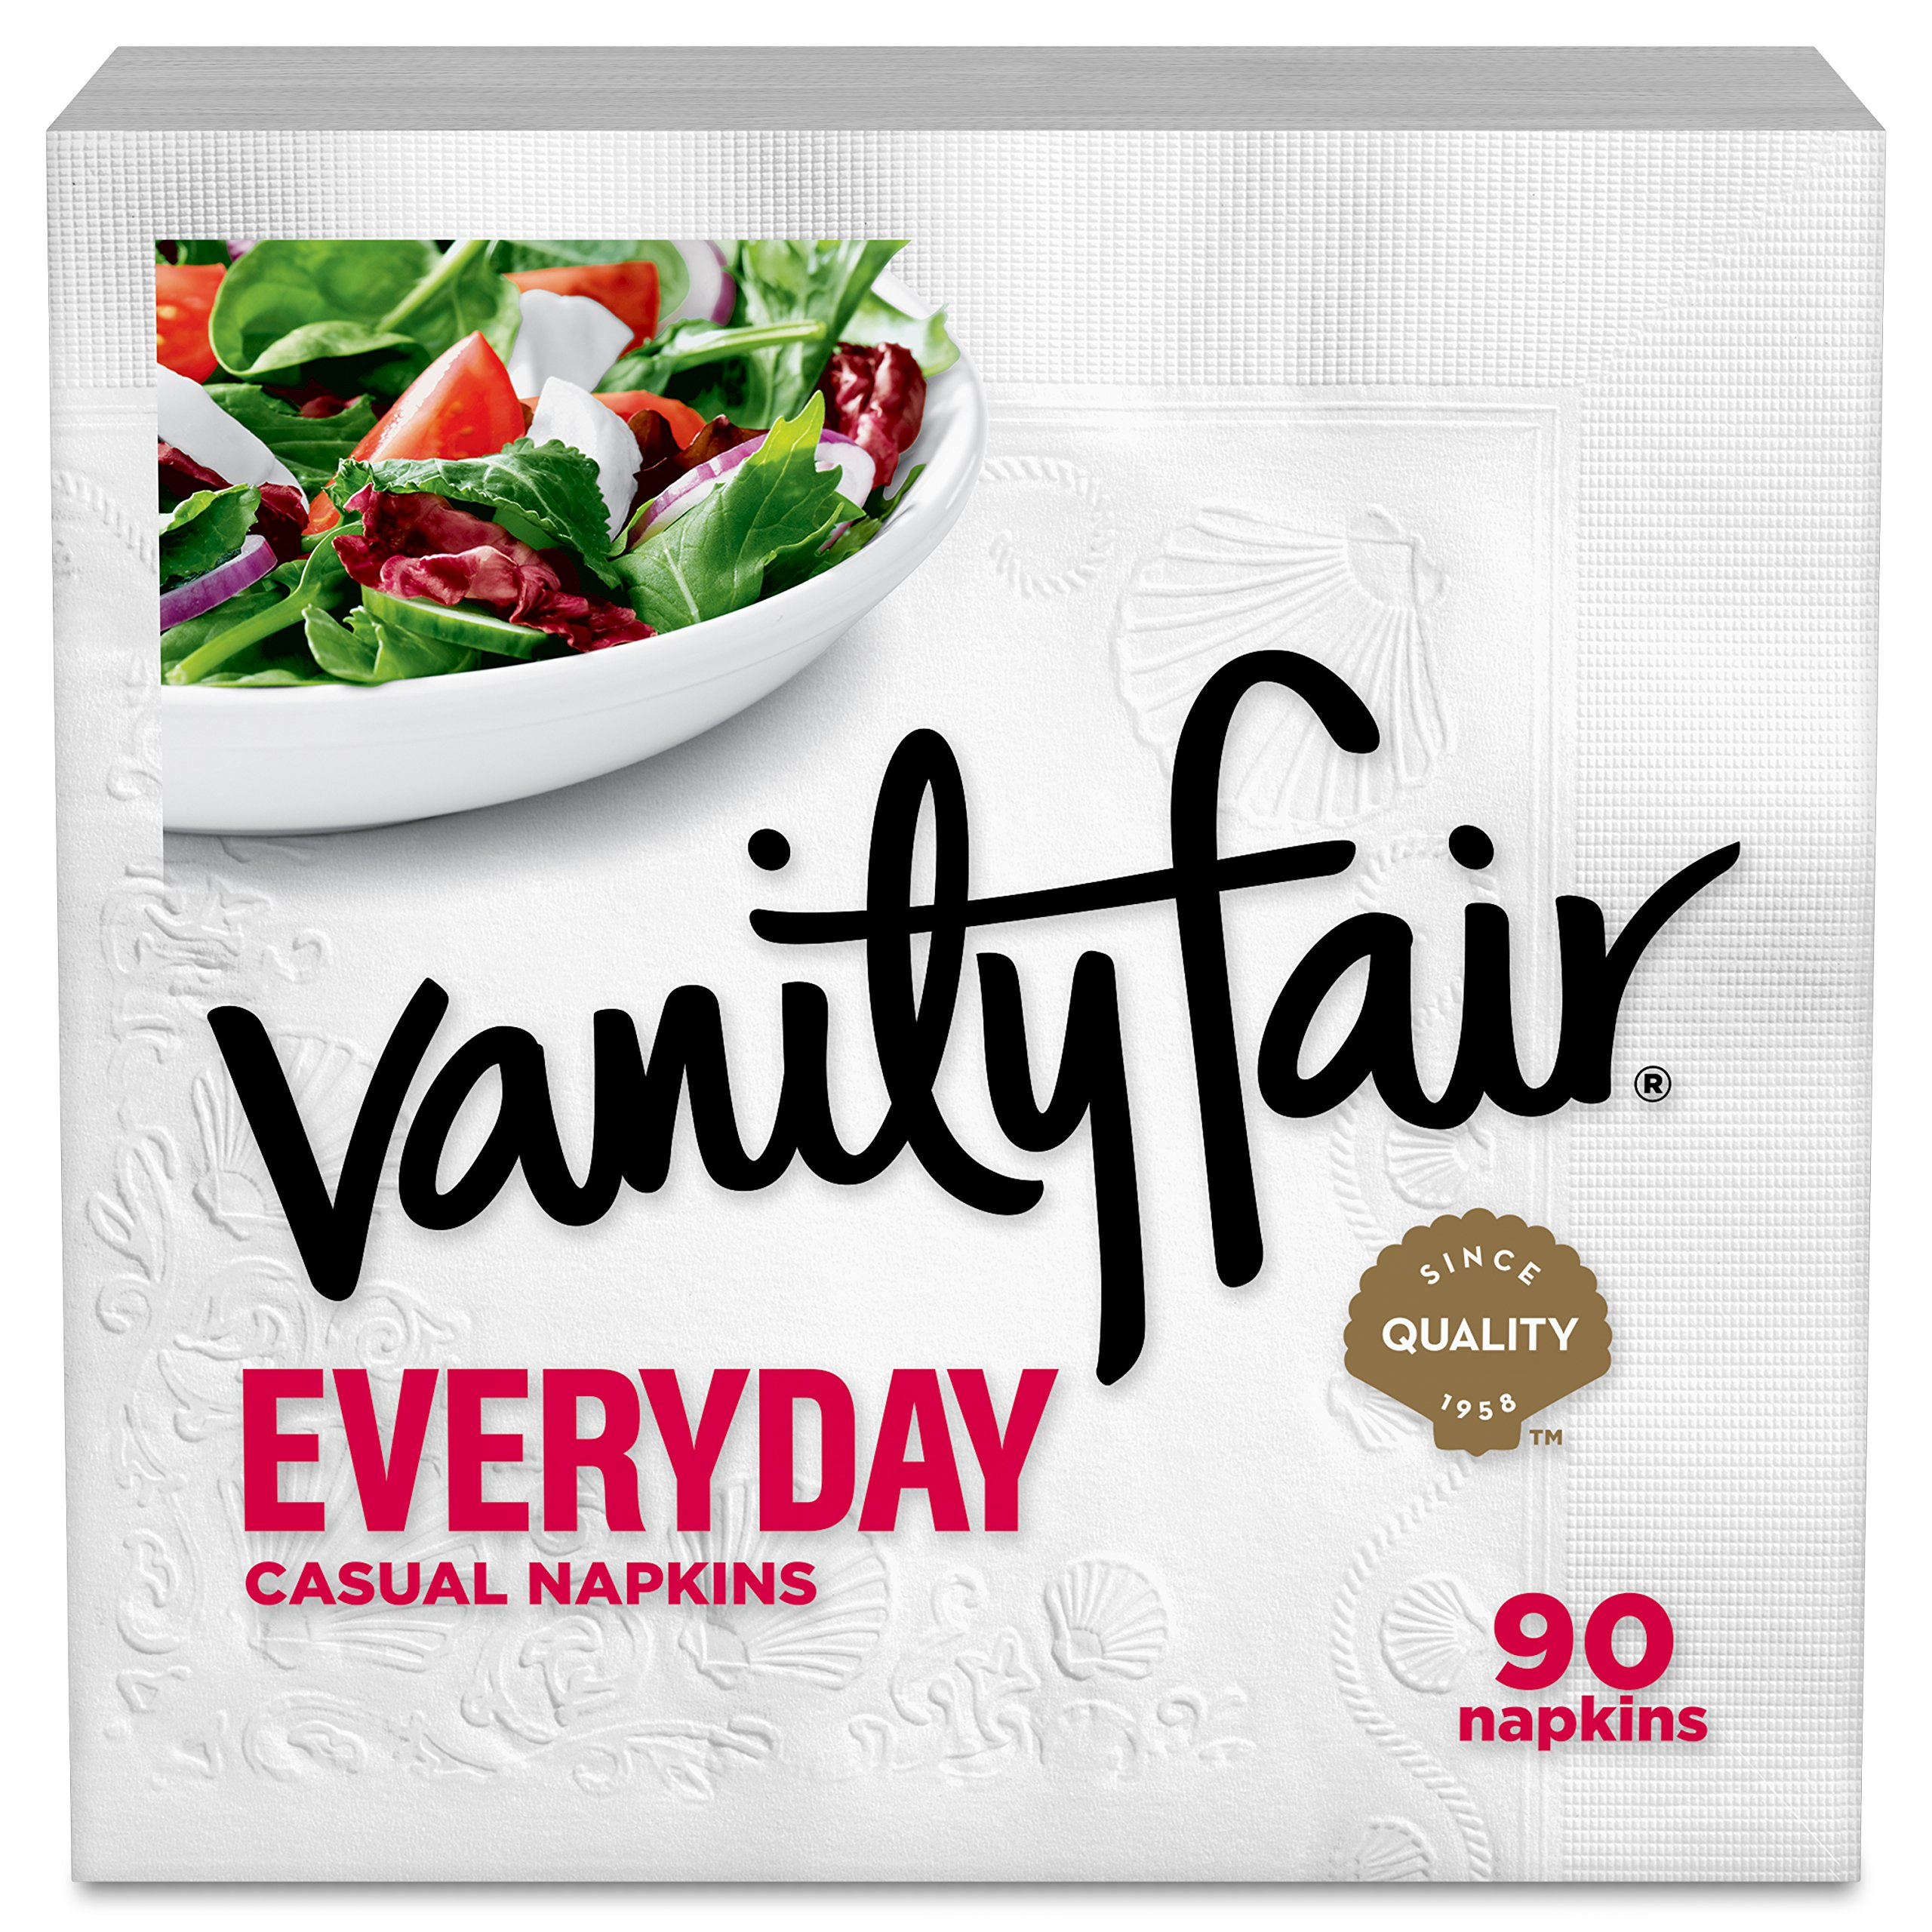 Vanity Fair Everyday Napkins, 1080 Count, White Paper Napkins, 12 Packs of 90 Napkins by Vanity Fair